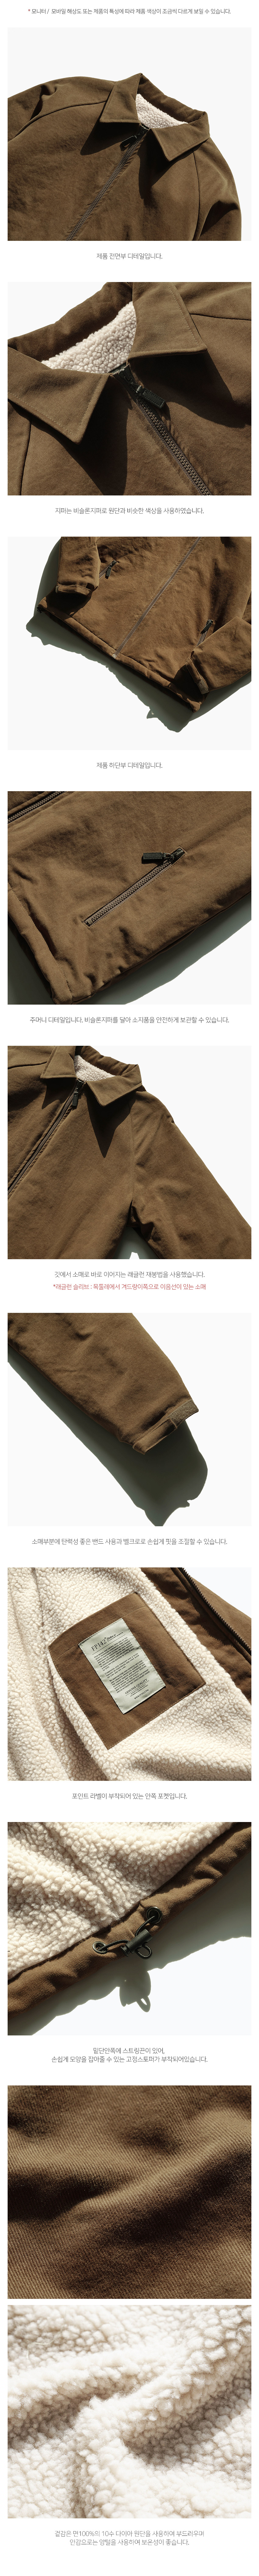 4_KHOT1238_detail_brown2_sr.jpg